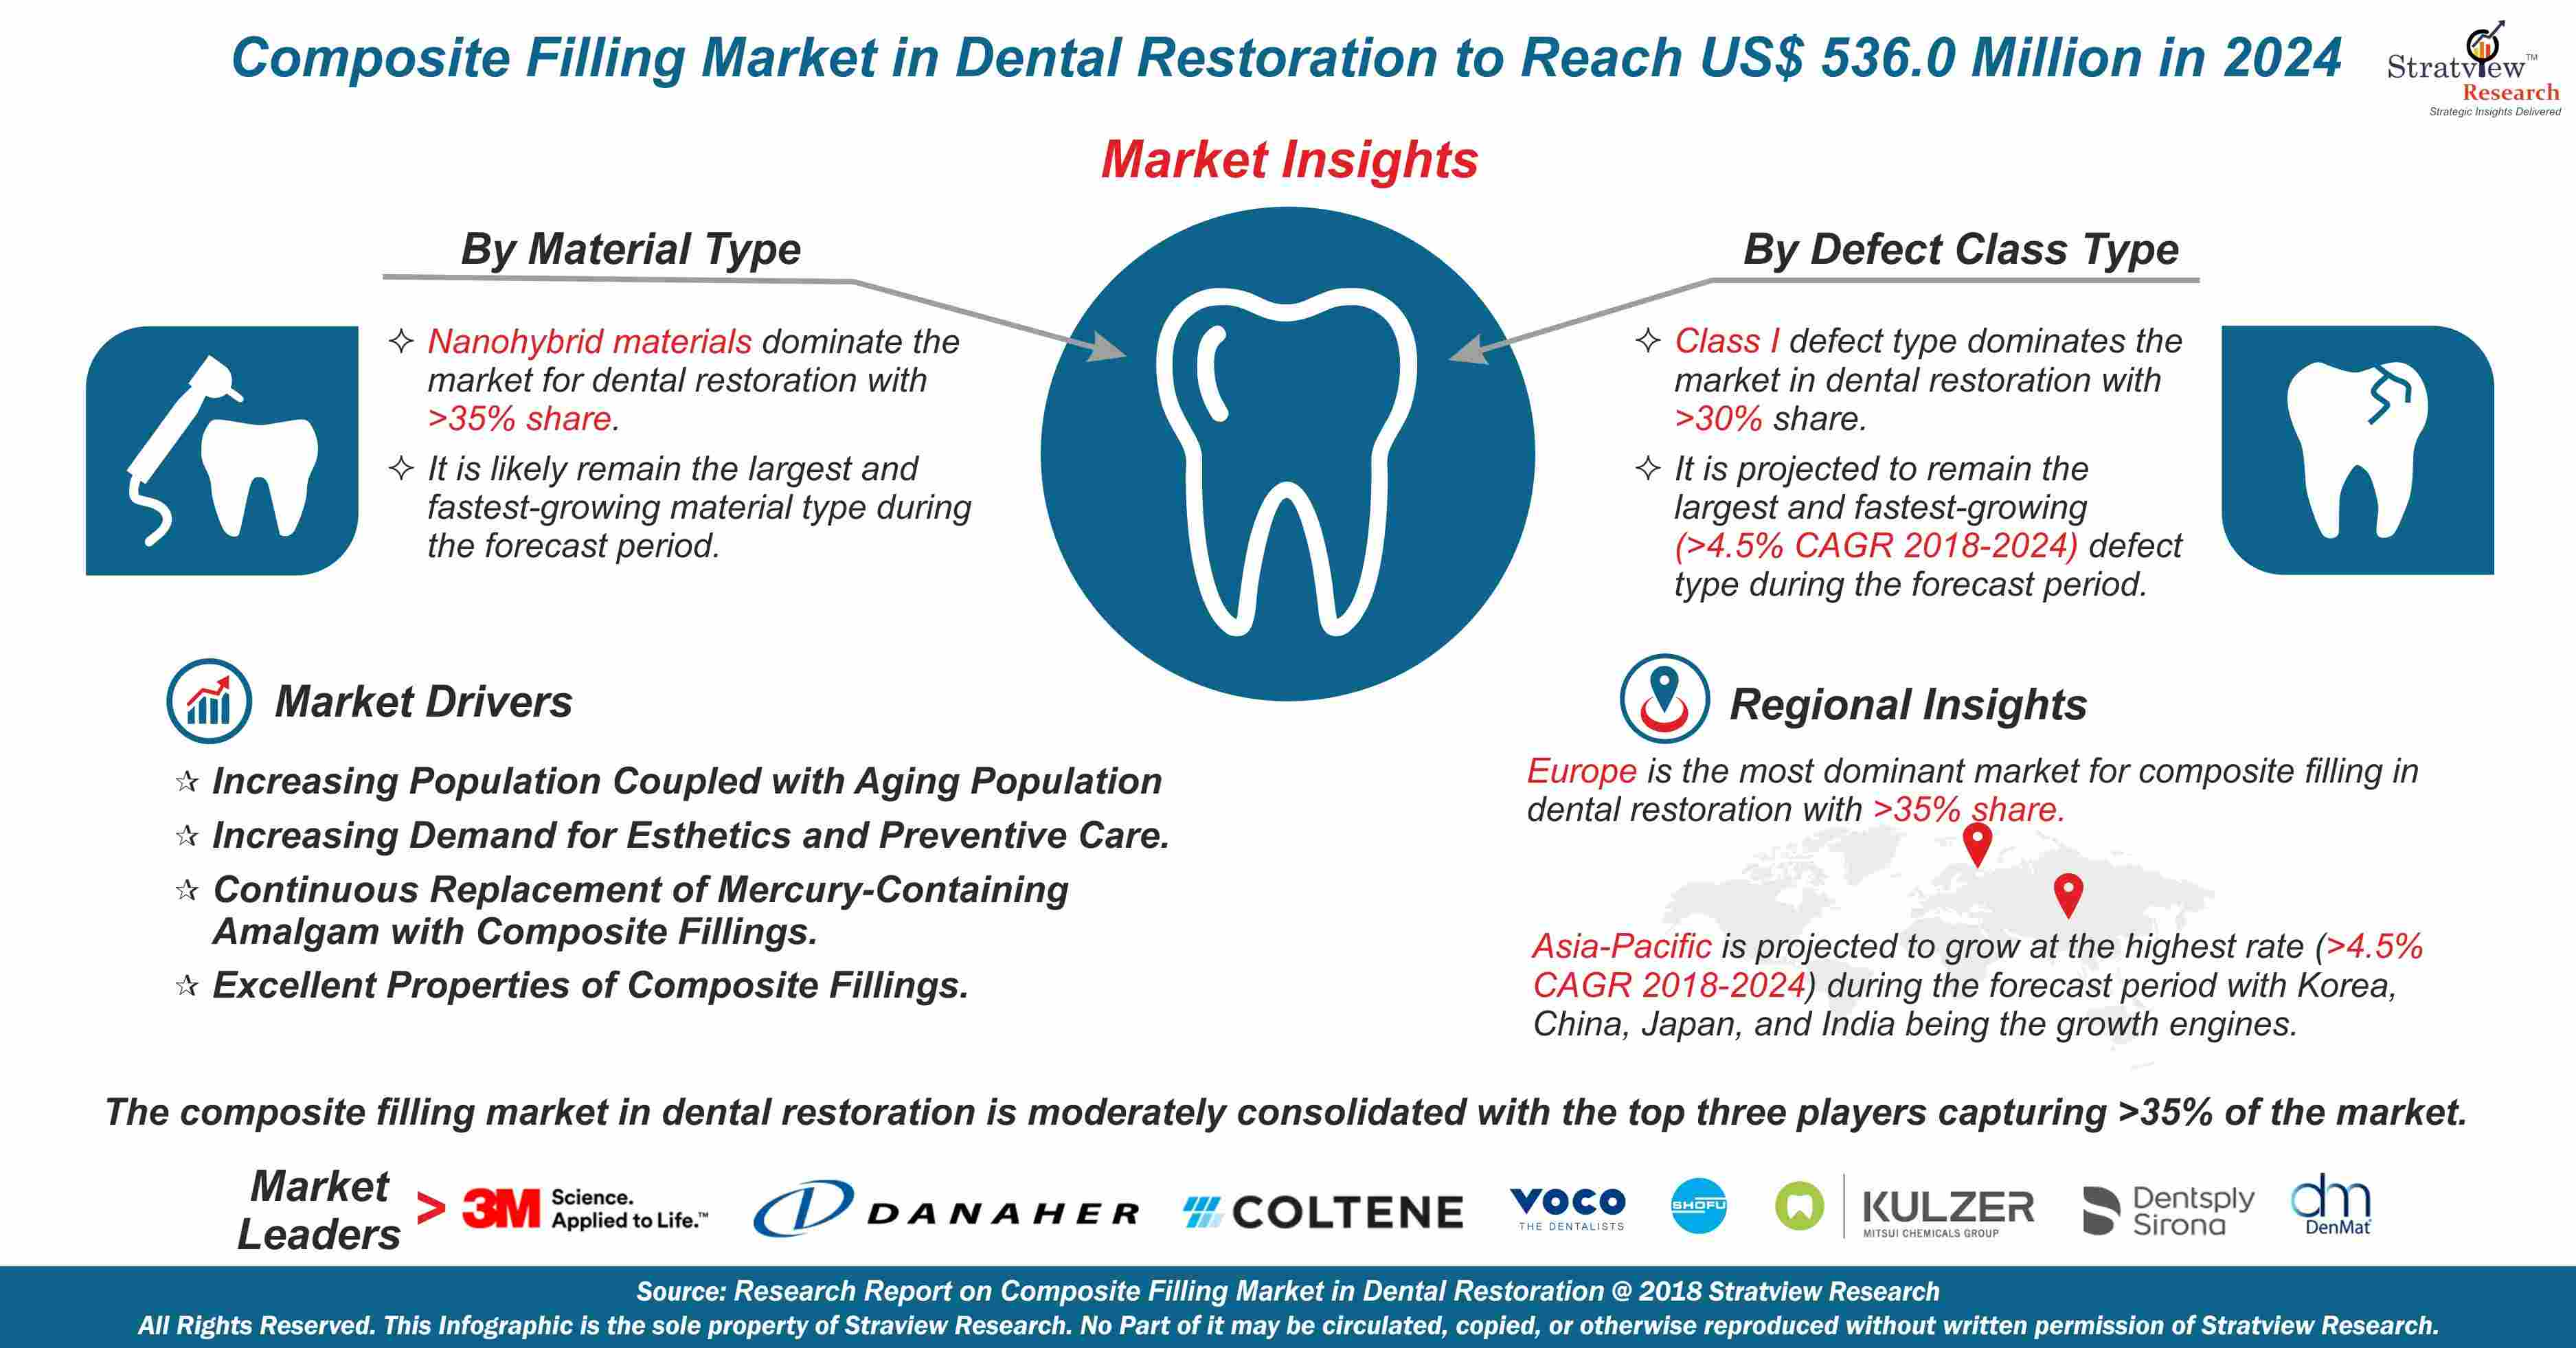 Composite Filling Market in Dental Restoration